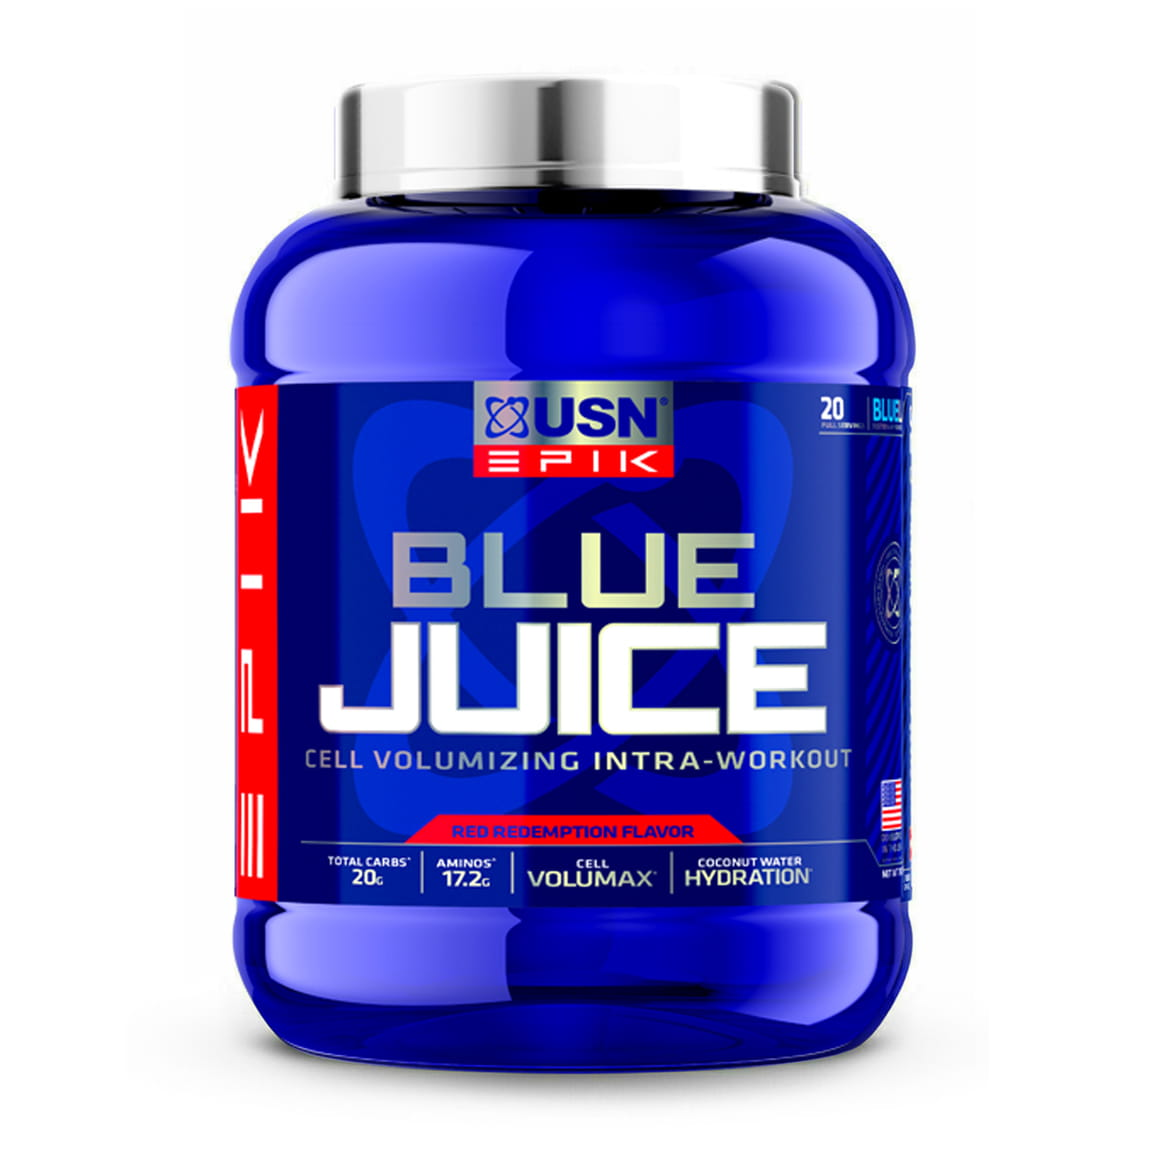 USN Epik Blue Juice, 880g